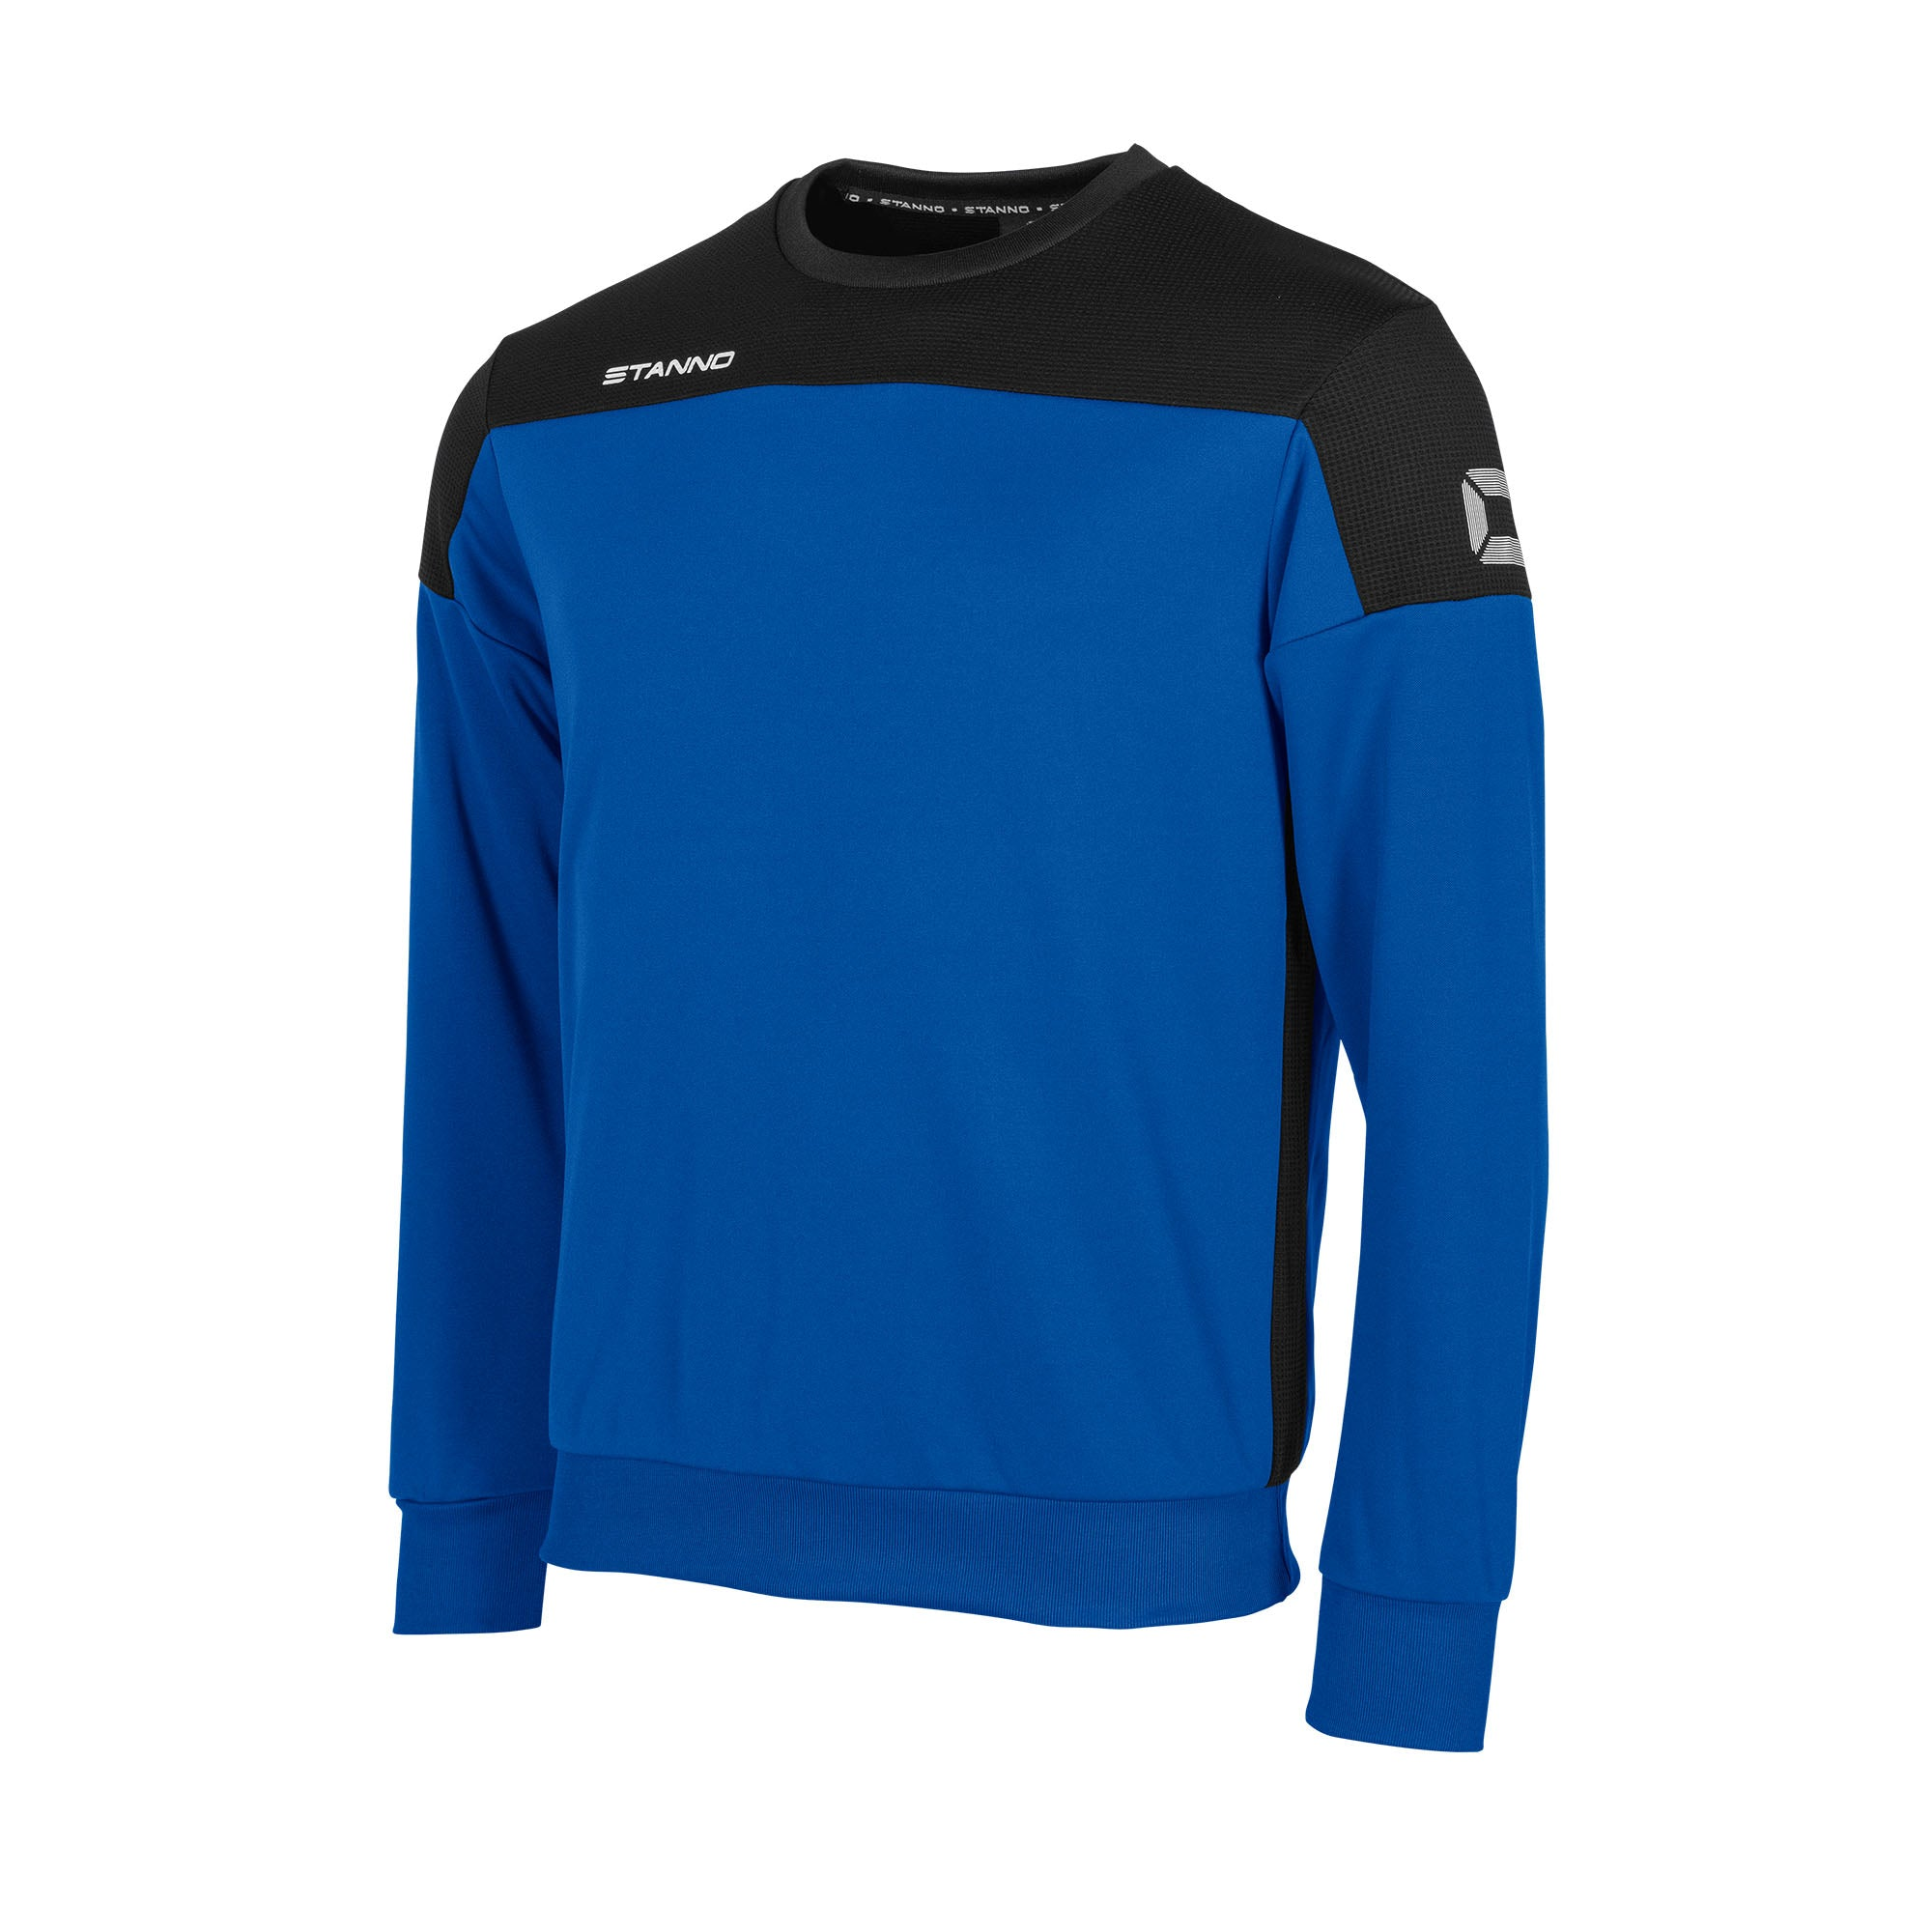 Stanno Pride round neck sweatshirt in royal blue, with mesh contrast black shoulder and side panel